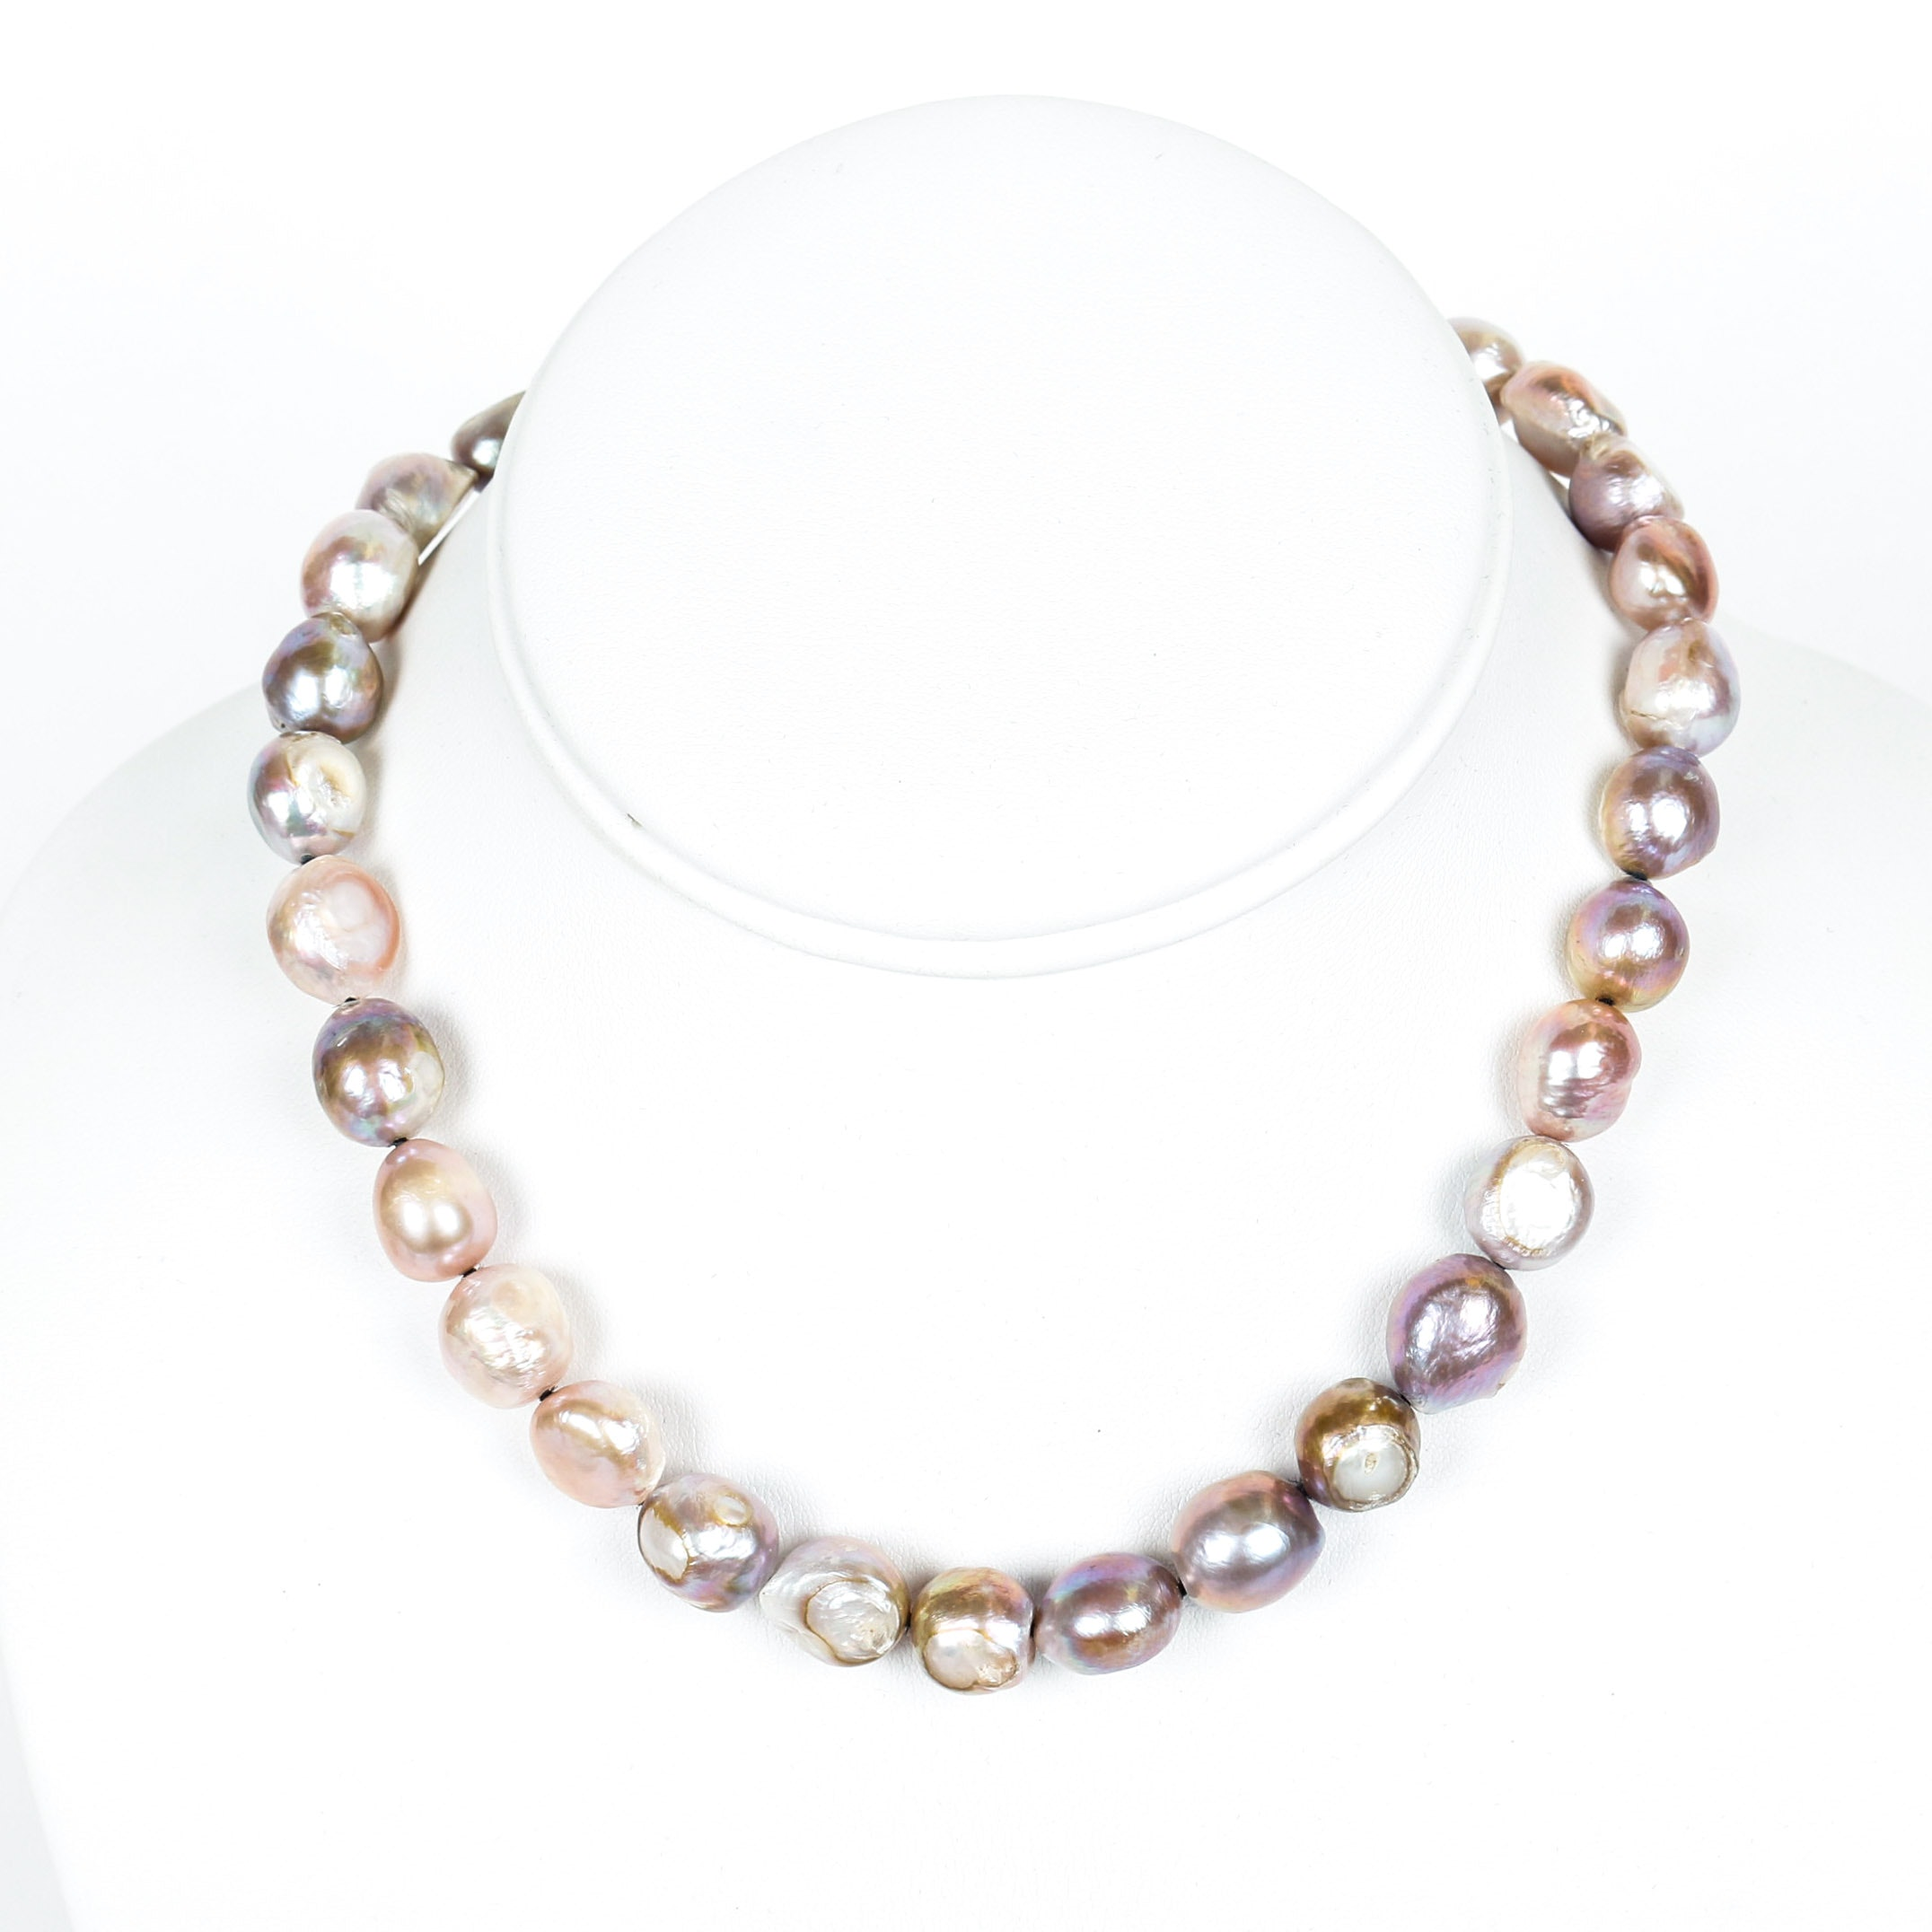 Dyed Freshwater Cultured Pearl Necklace with a 14K Clasp